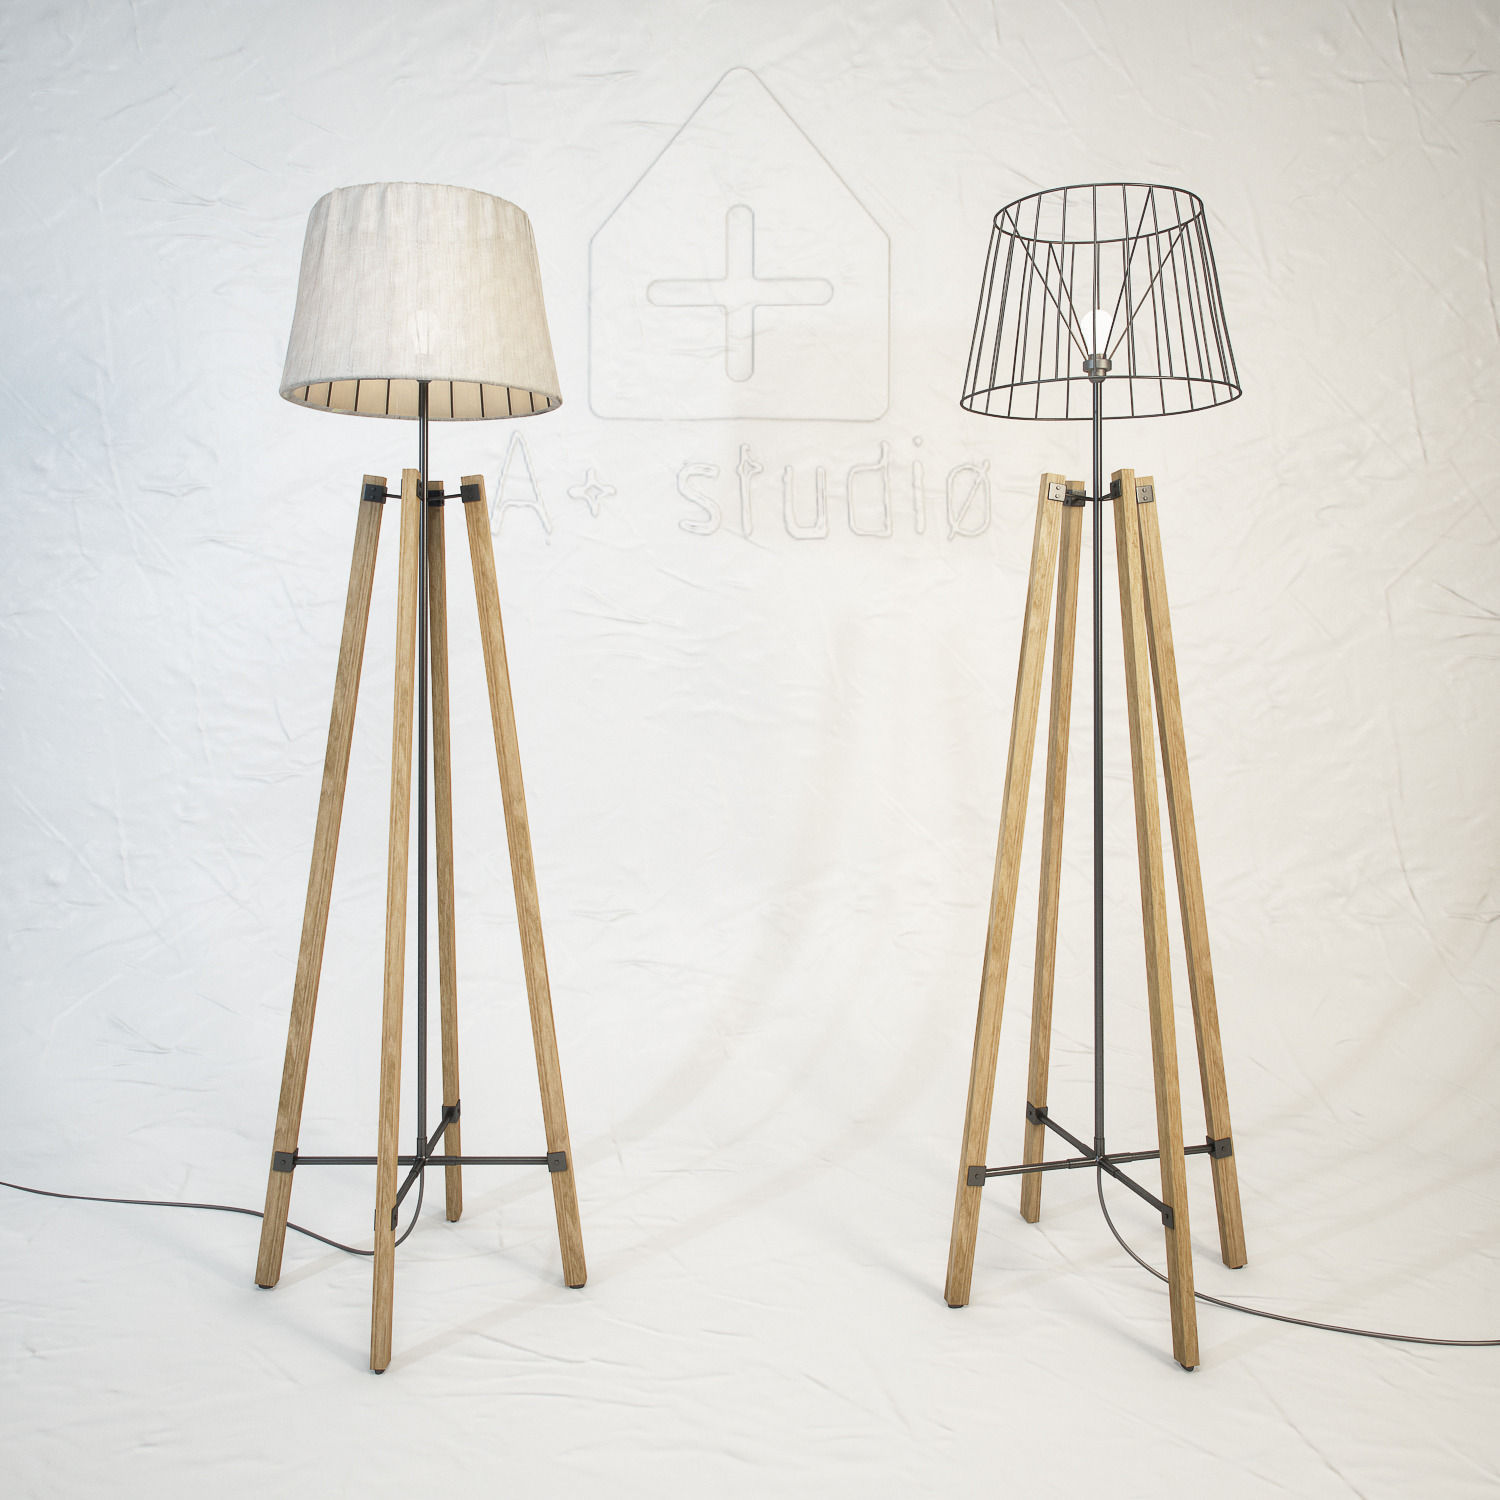 Awesome wire table lamp shade pictures inspiration electrical wire floor lamp shade gallery wiring table and diagram sample greentooth Image collections